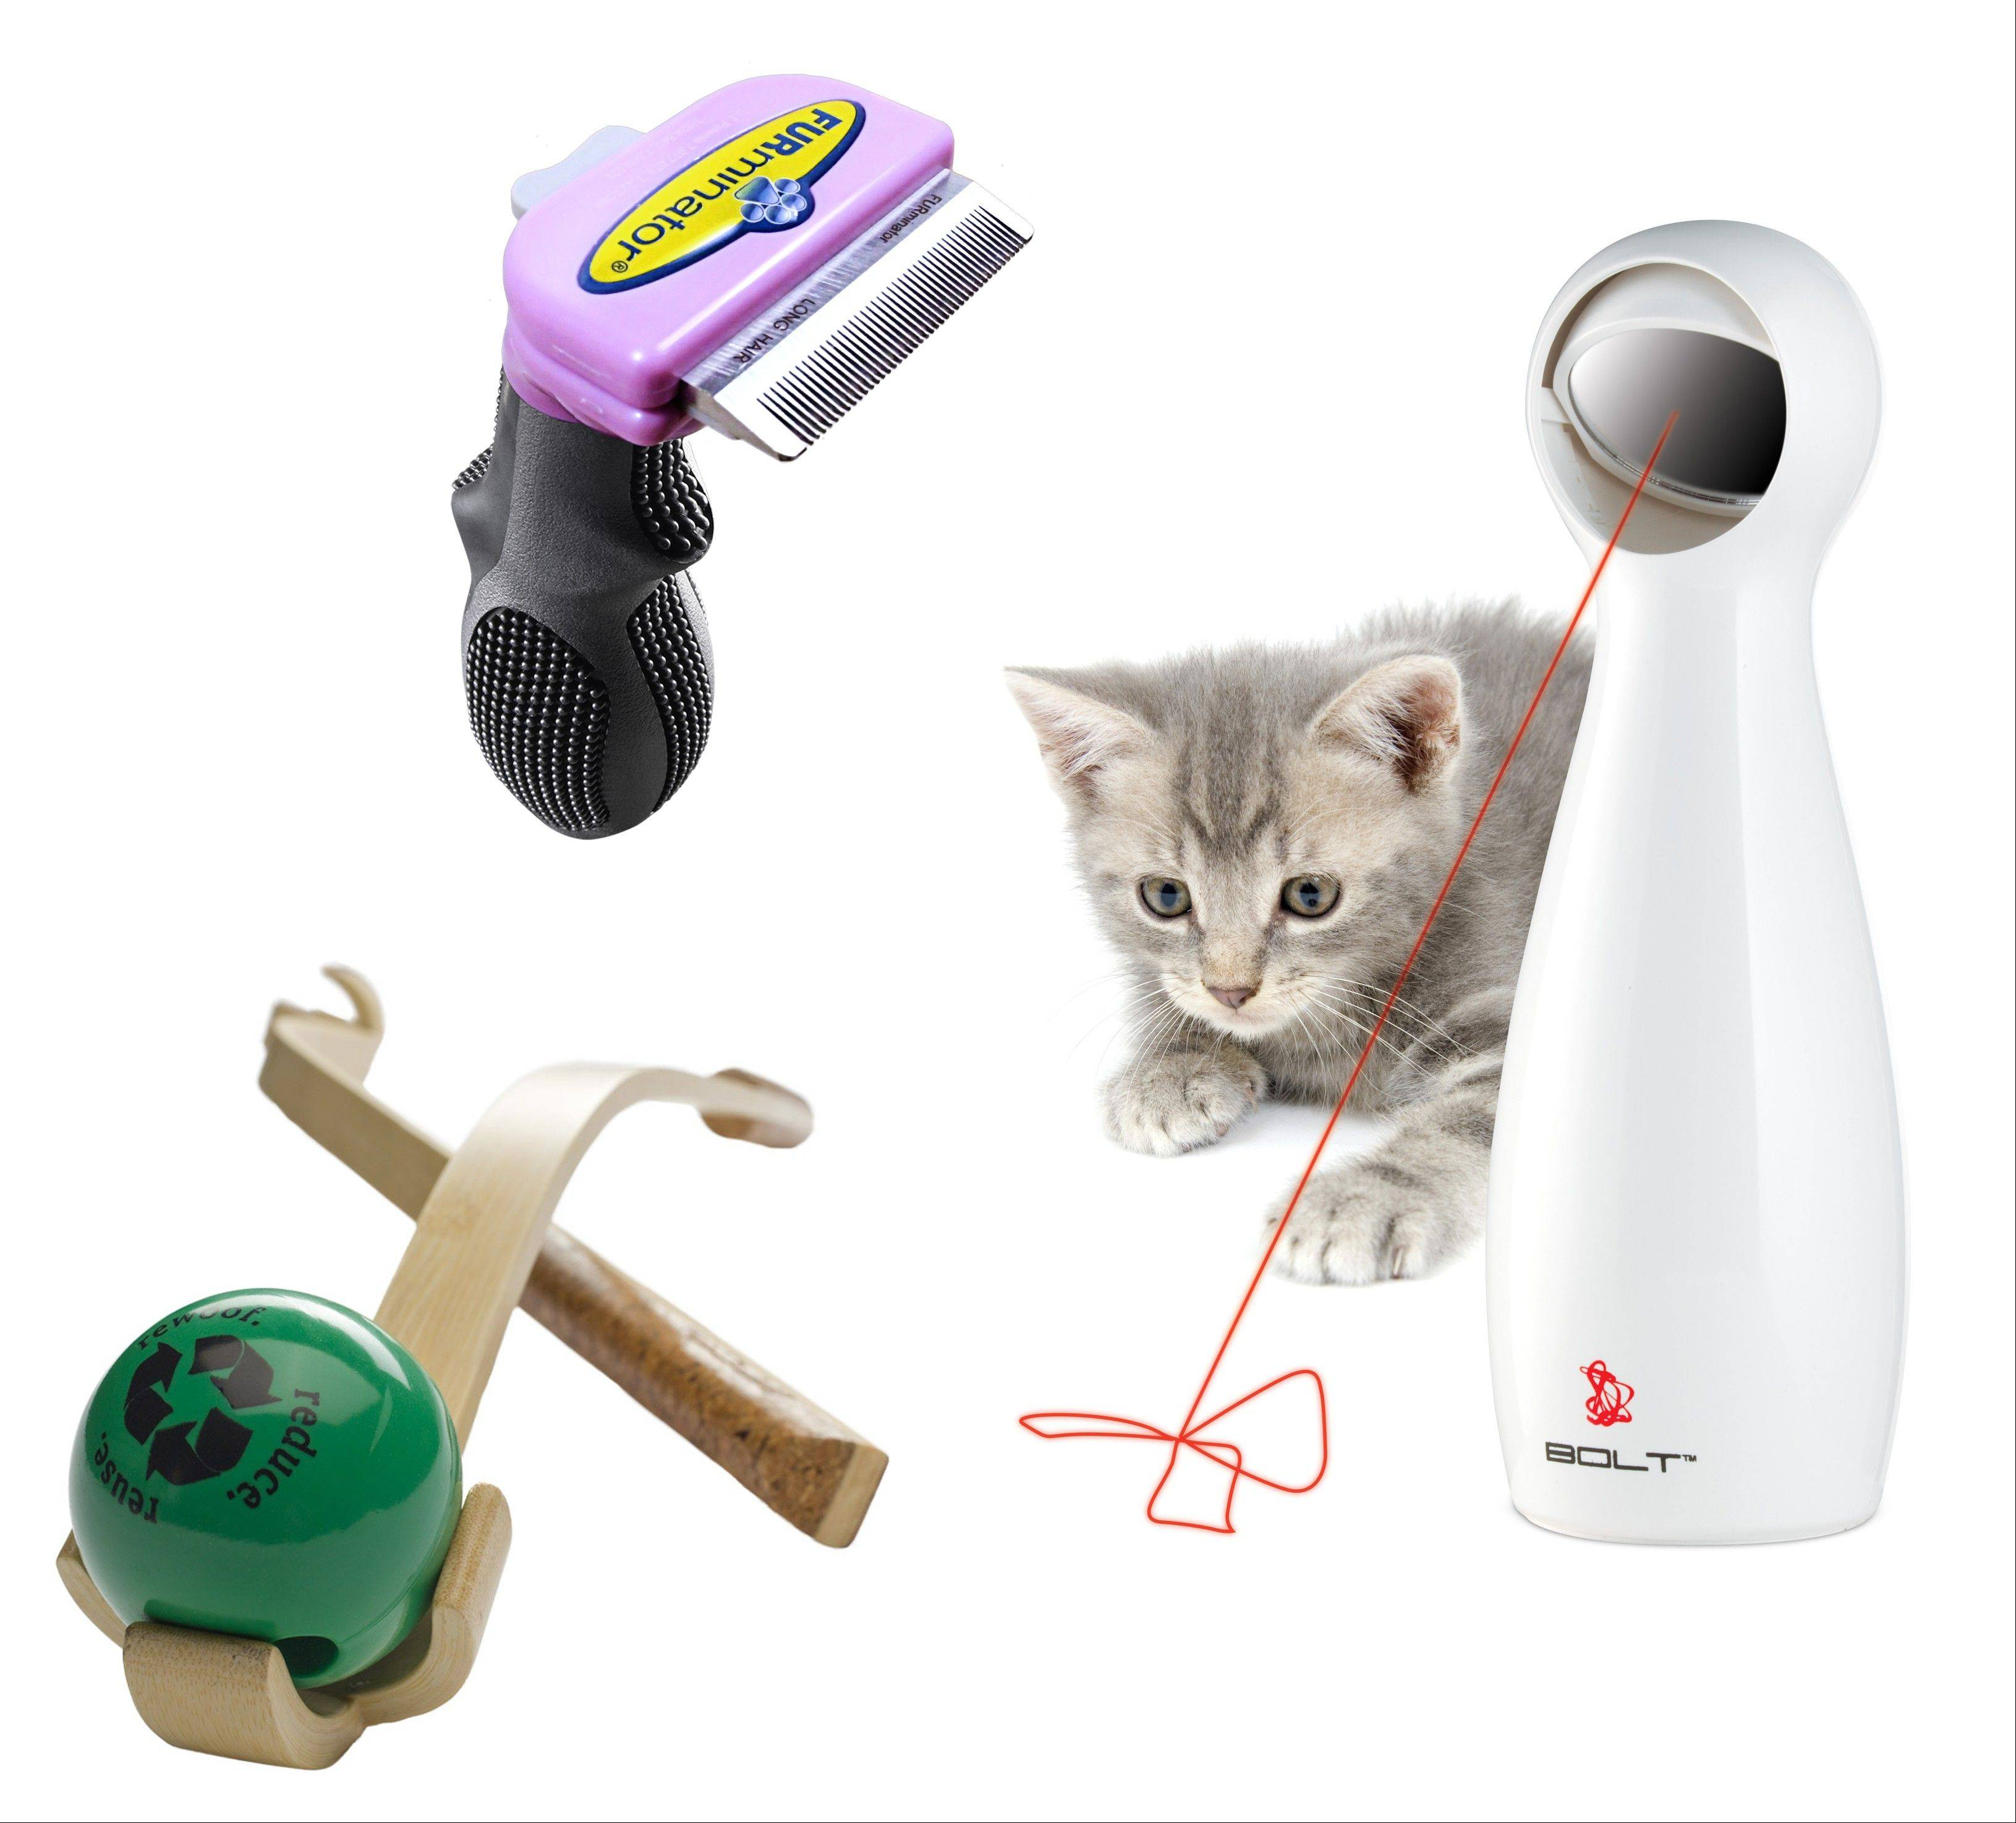 New pet products: Planet Dog's Wood Chuck ($25) has a comfy cork handle and four-pronged claw for easy, slobber-free pickup. The FURminator ($40) cat-grooming tool controls shedding and prevents hairballs; and the FroliCat Bolt laser toy ($20) engages even the most independent kitty.